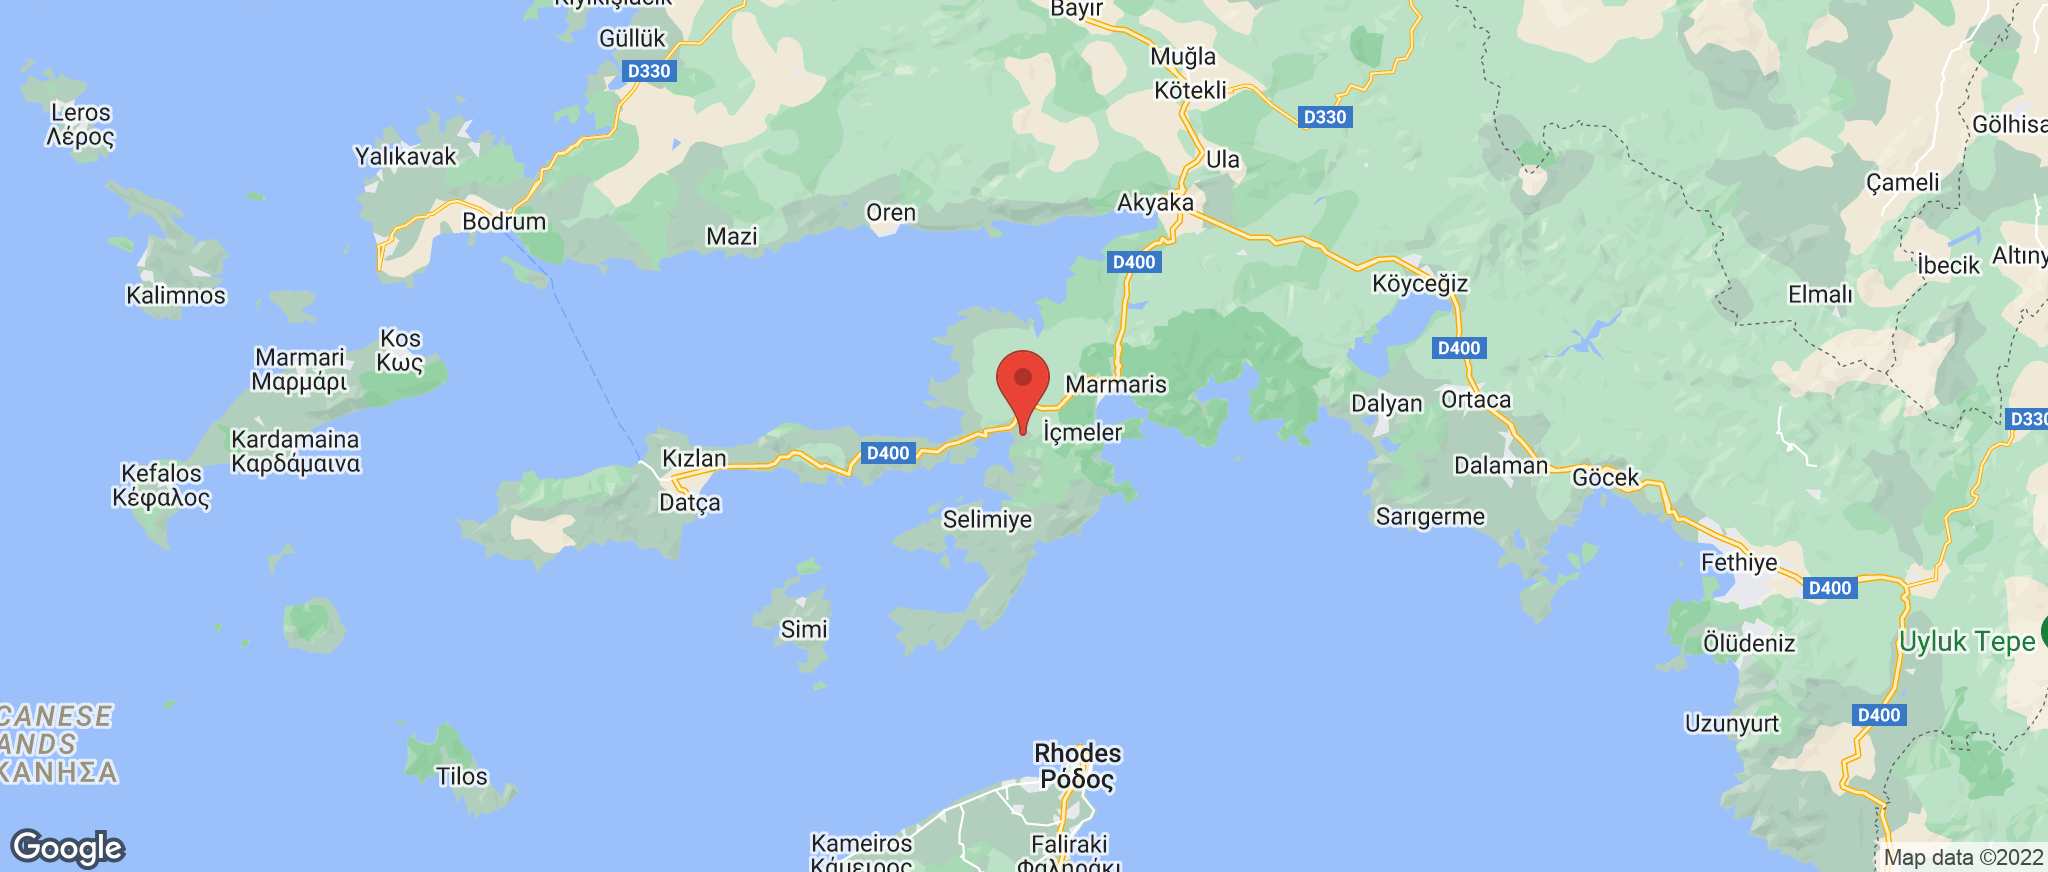 Map showing the location of Hisaronu